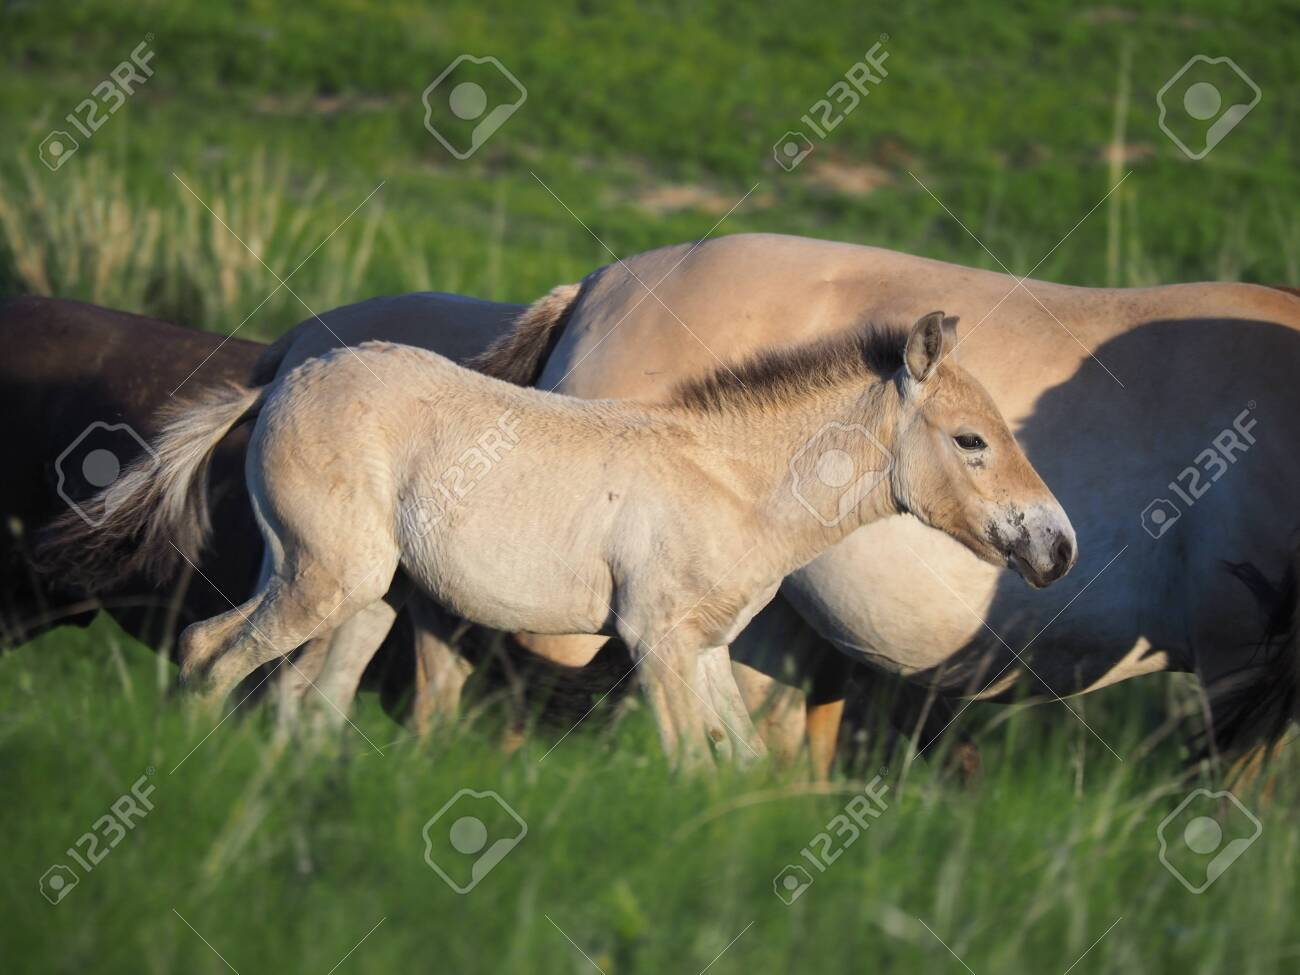 Takhi Horse Or The Przewalski Horse Are Wild Horses In Mongolia Stock Photo Picture And Royalty Free Image Image 149012222